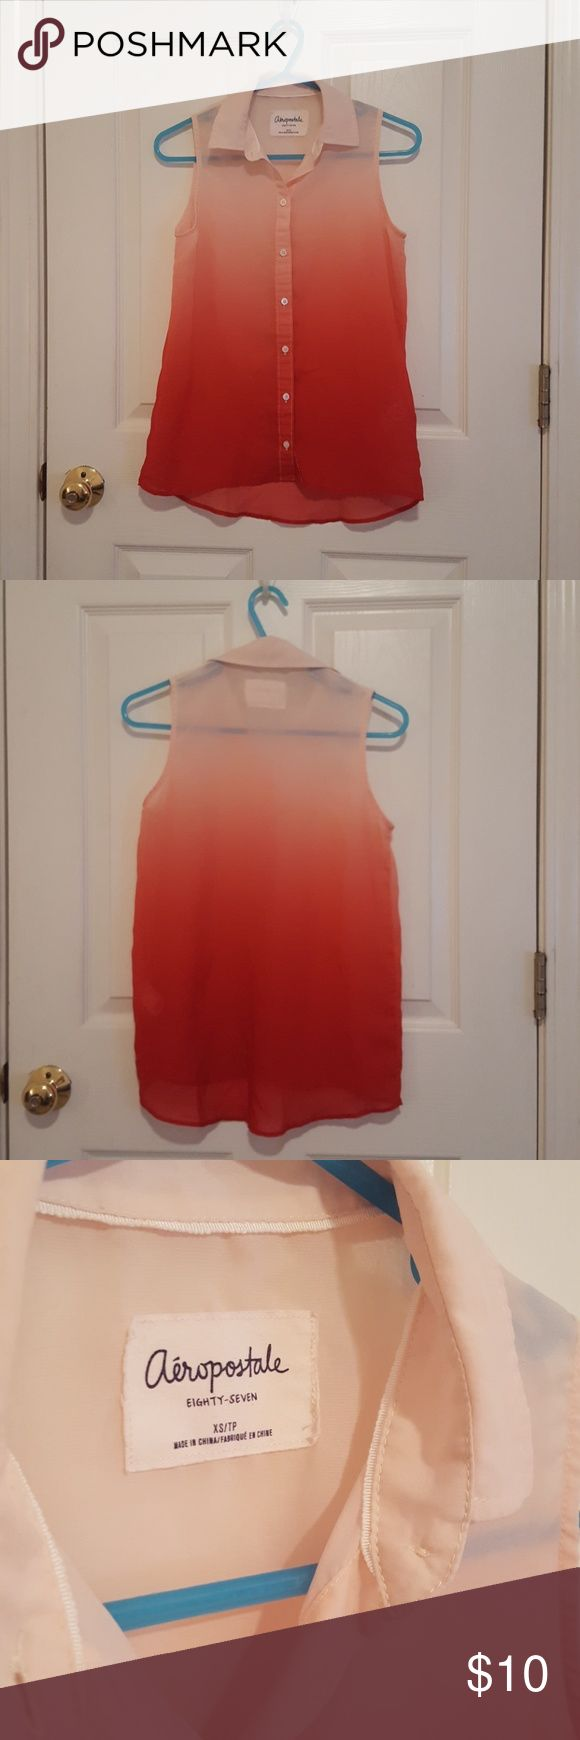 Aeropostale Ombre Sleeveless Button Up Blouse Beautiful sheer ombre style blouse, gradient from top to bottom is peach to red. Perfect for young professionals or a teen's first job. No stains, no rips. Lightly worn. Needs slight ironing. Aeropostale Tops Blouses